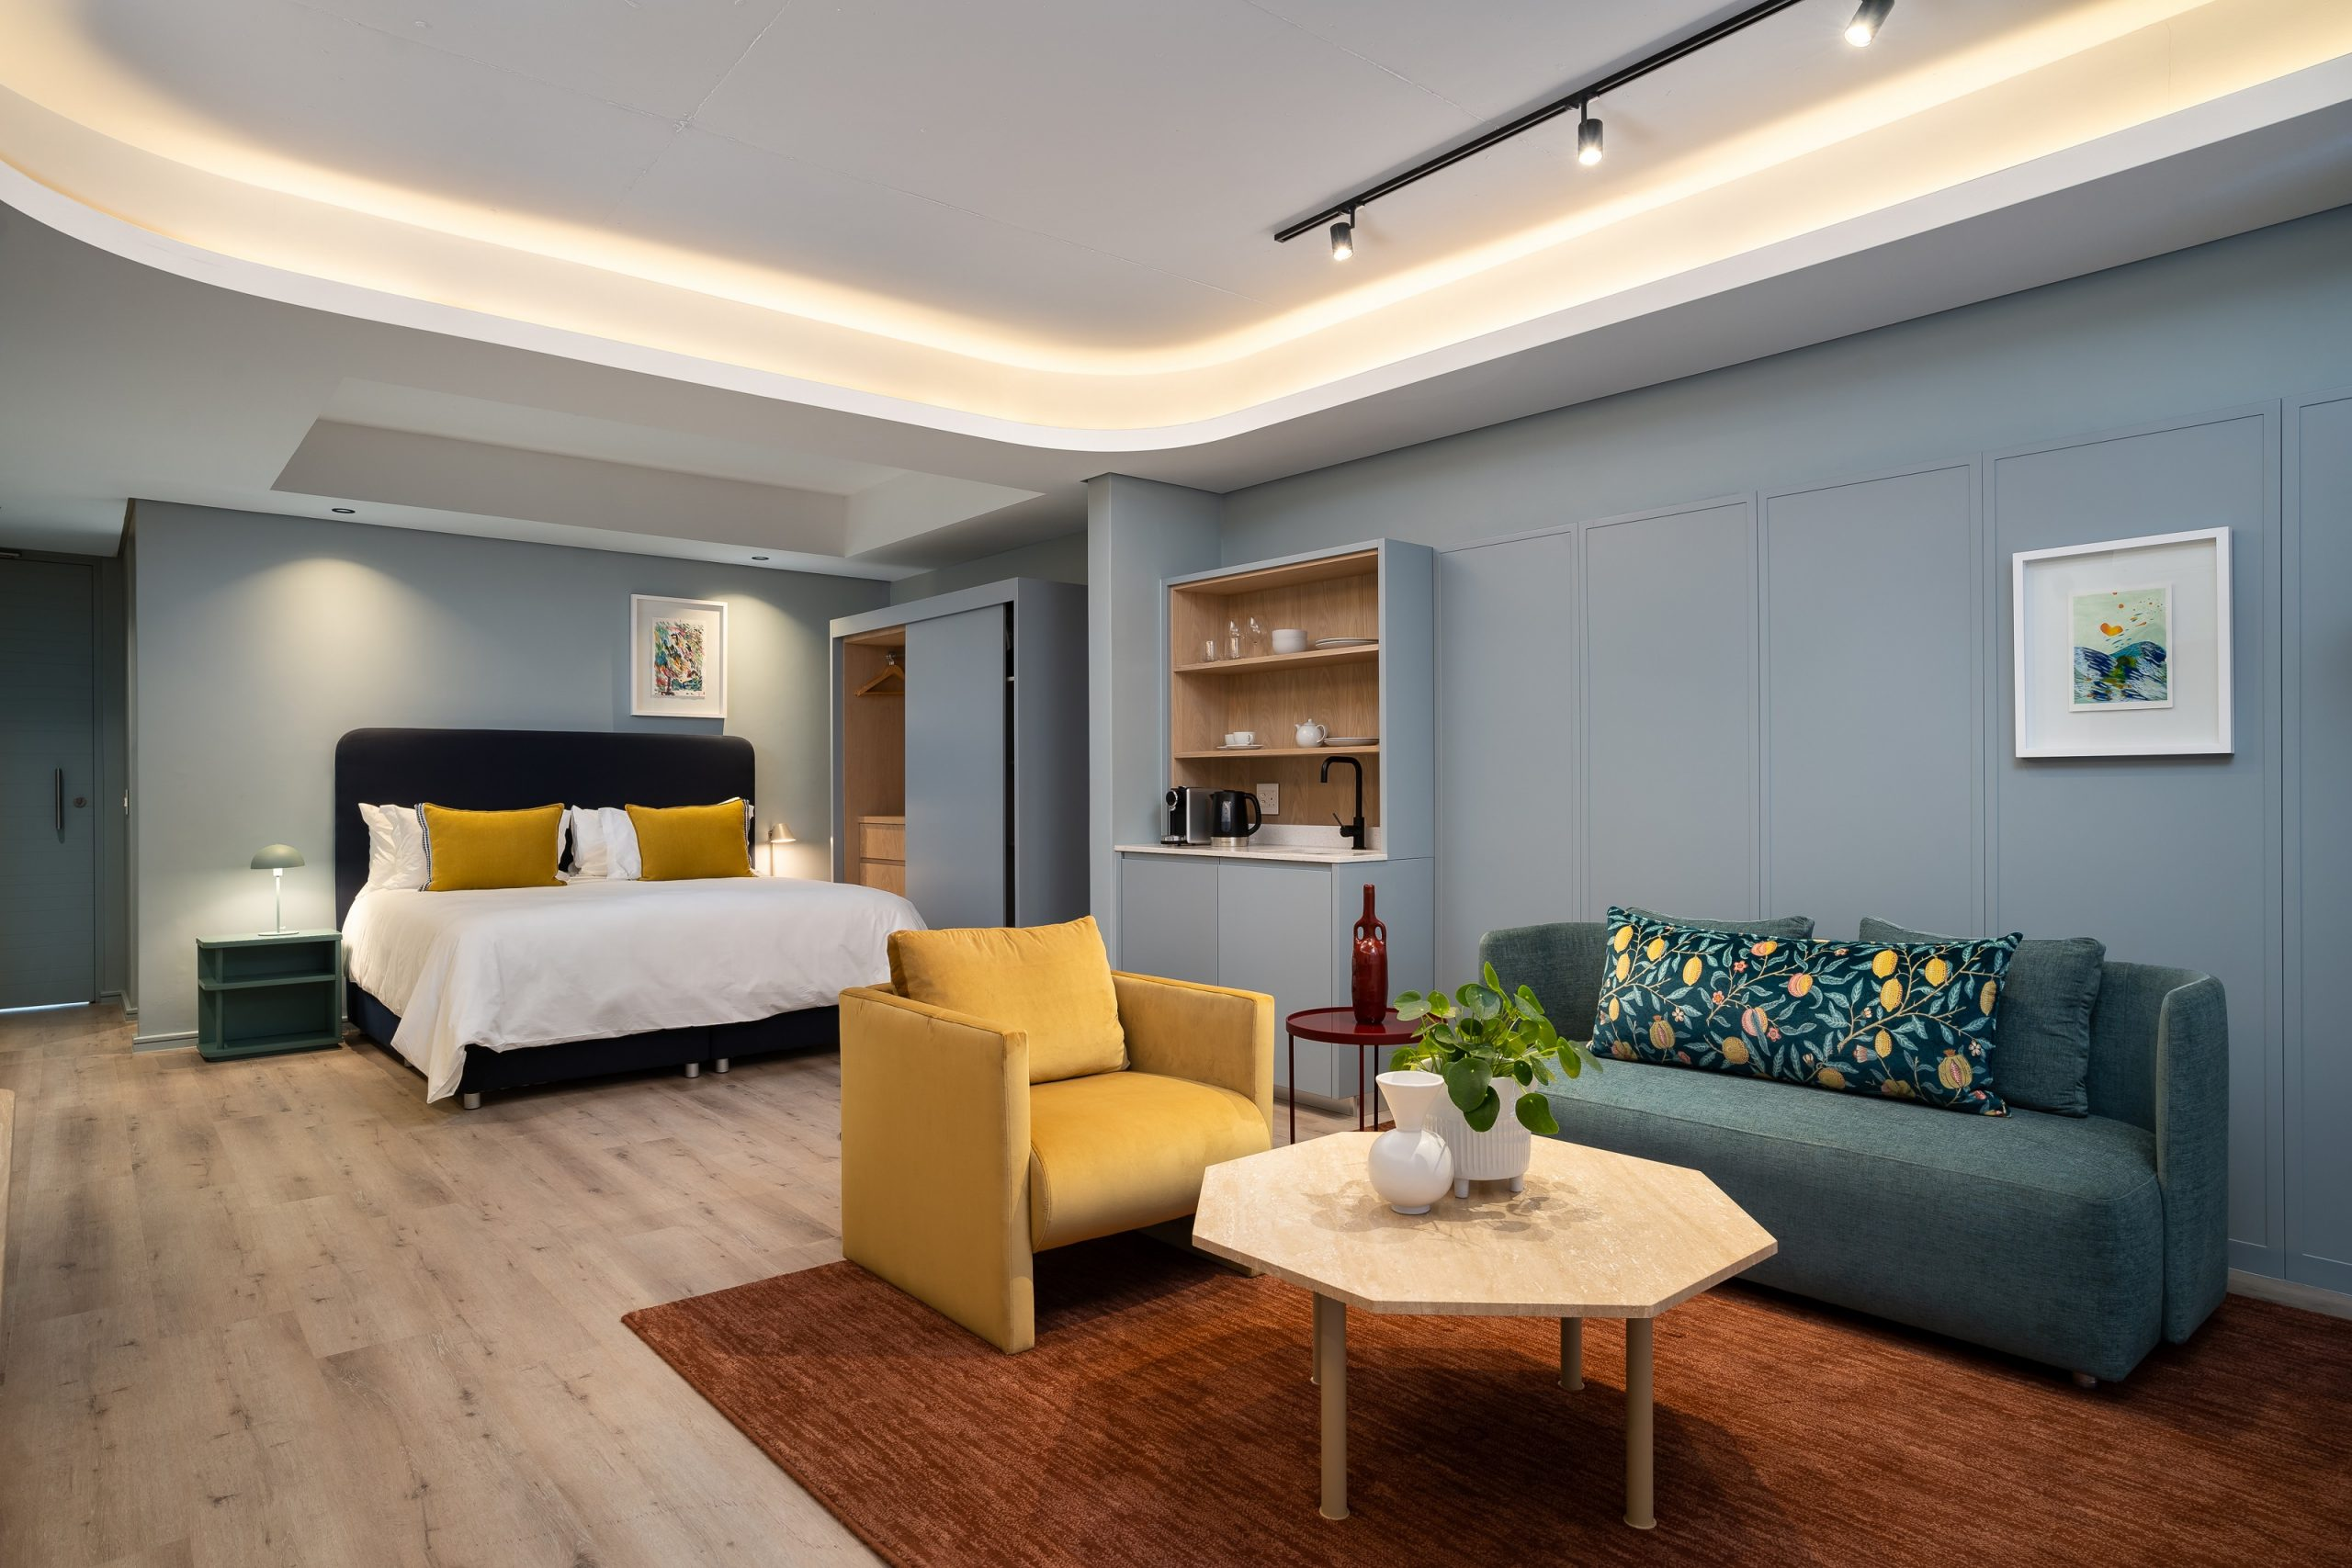 Home Suite Hotels